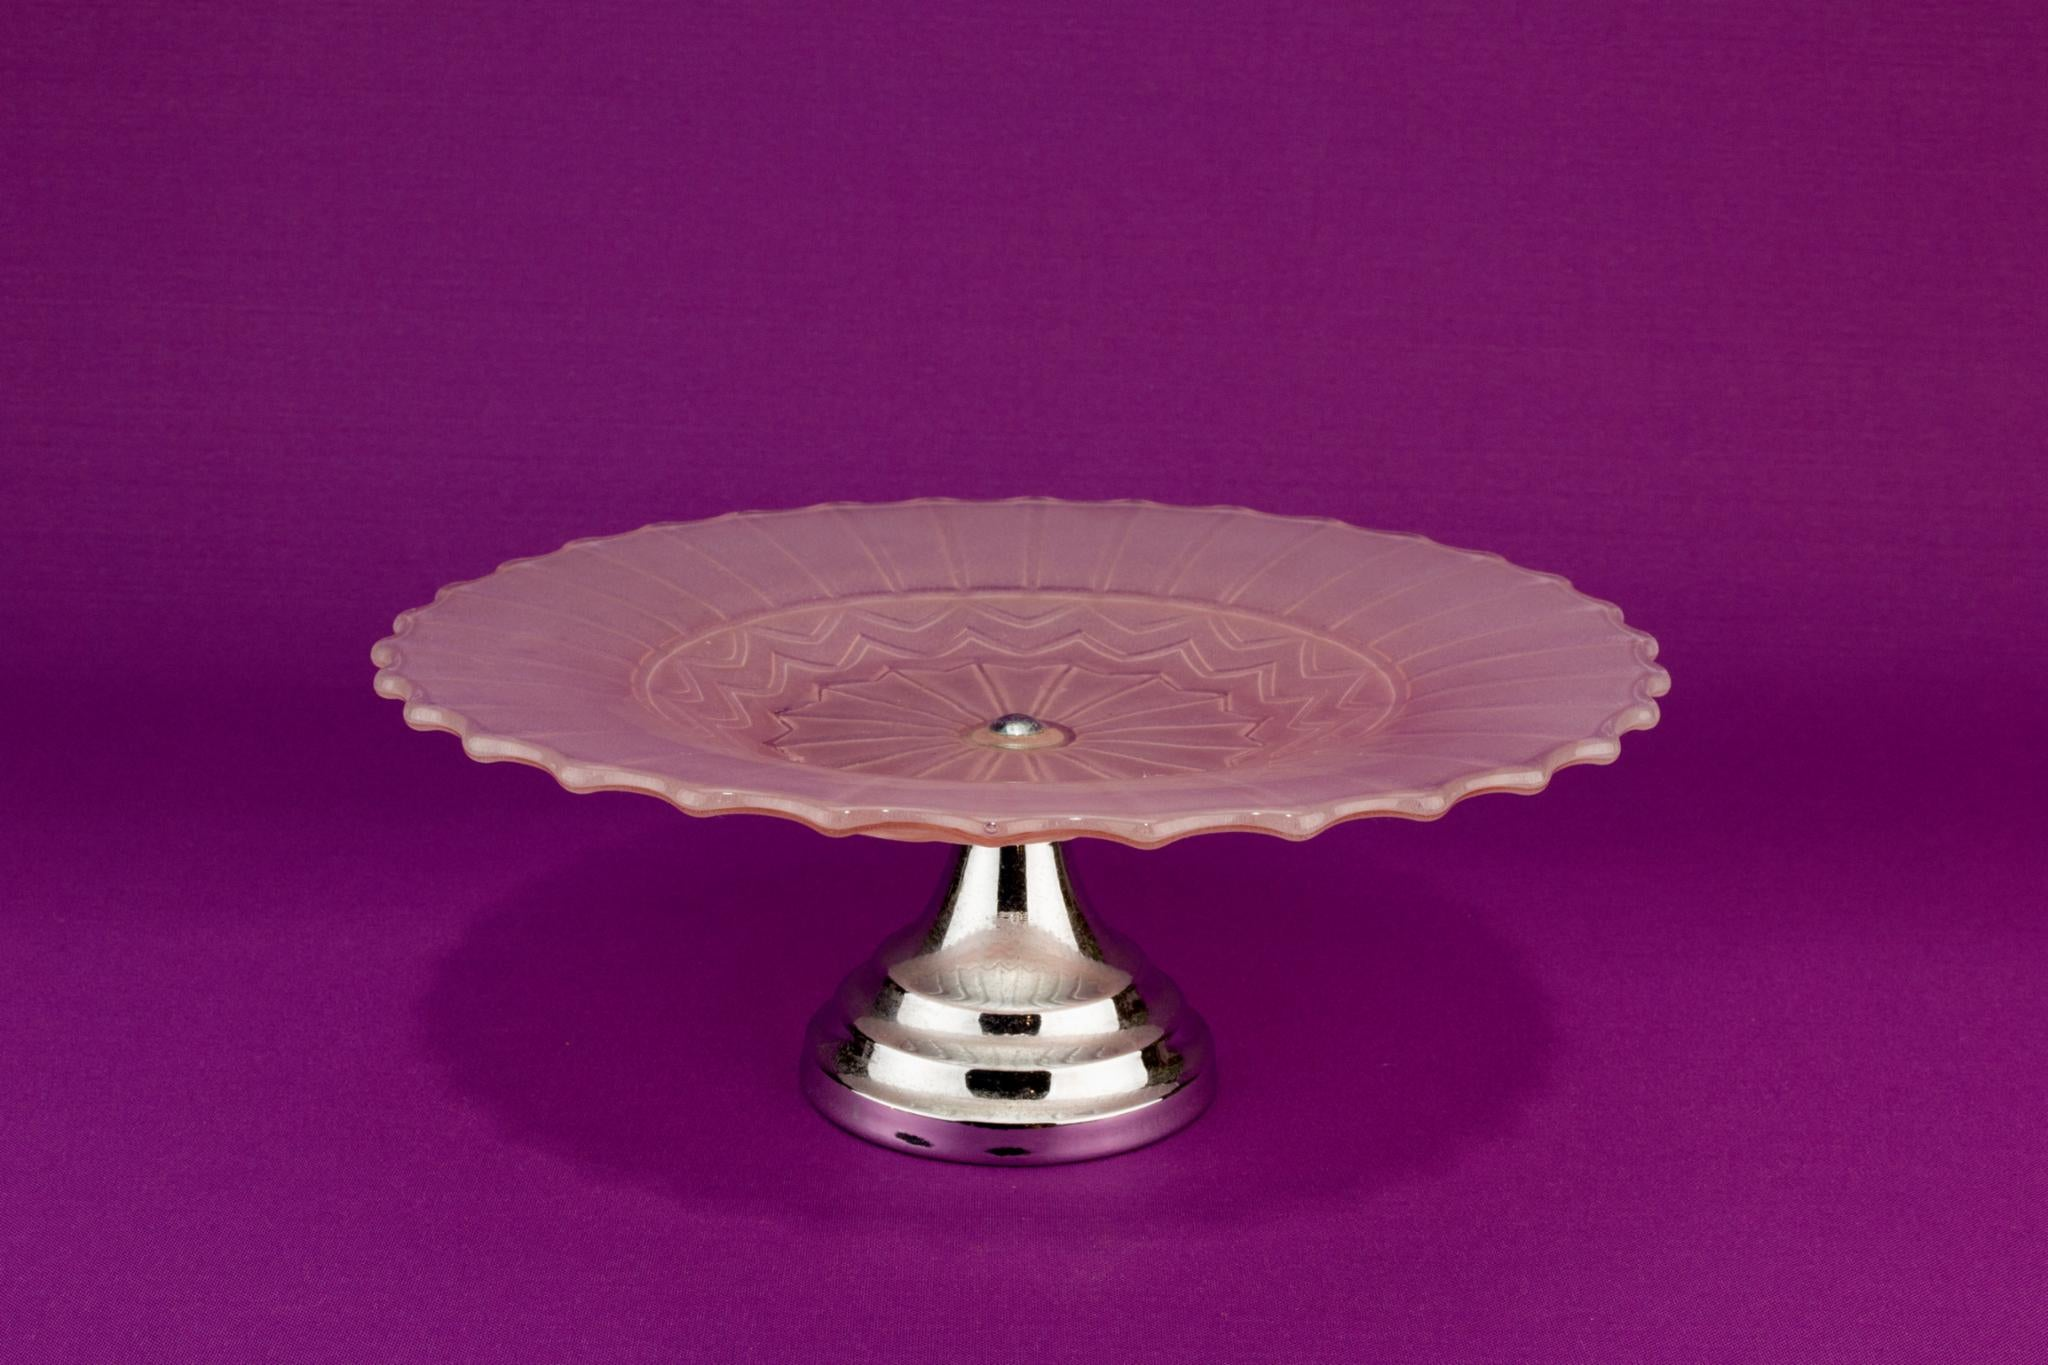 Art Deco Pink glass and chrome cake stand, English 1930s